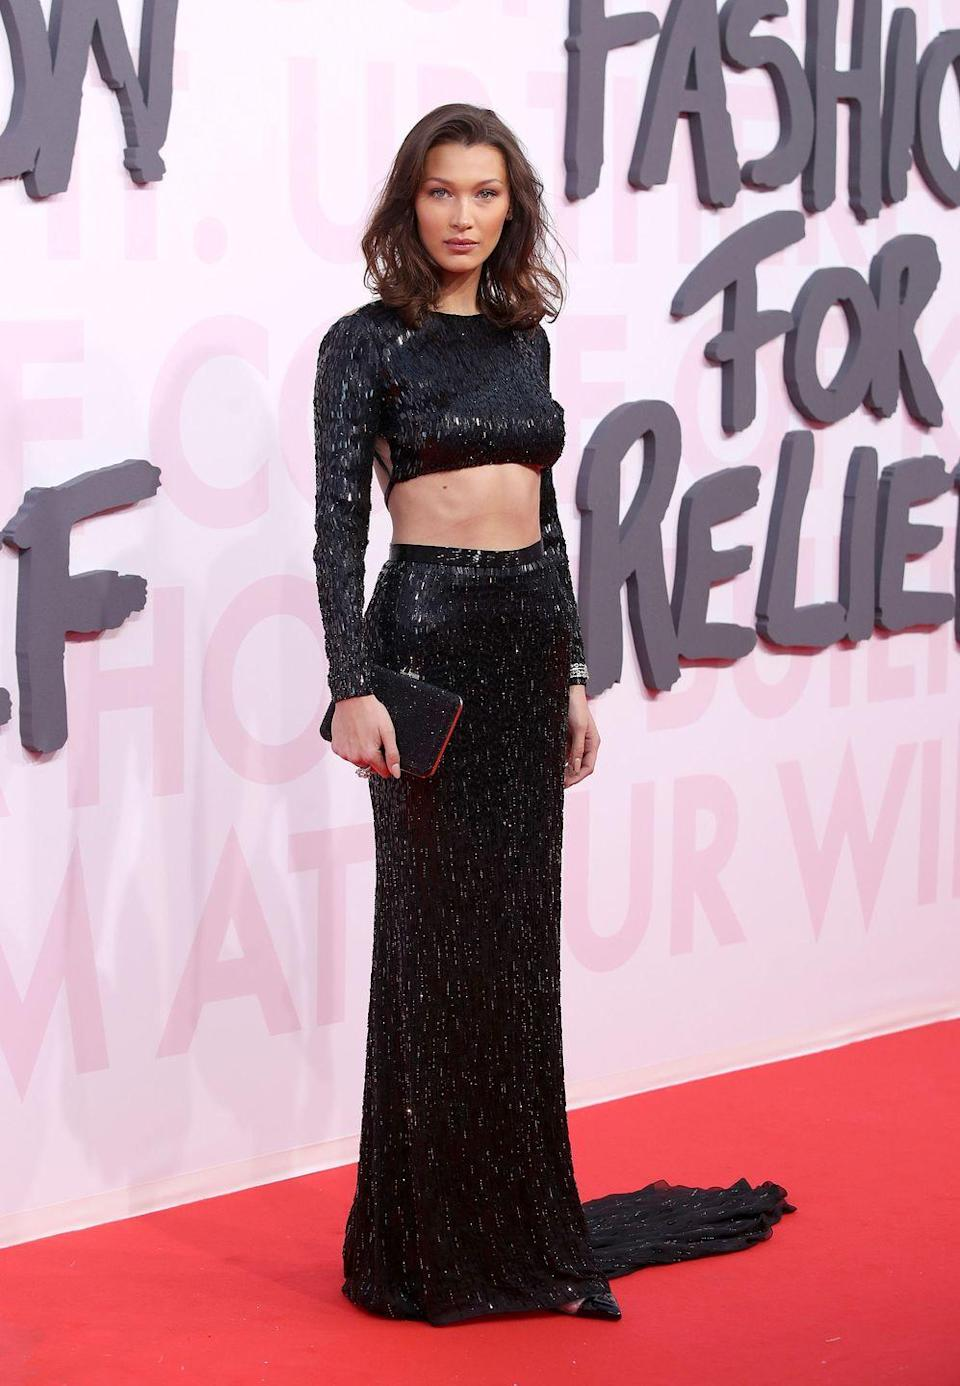 <p>The model sported a sparkly black gown that had a cutout at the midriff for the Fashion For Relief party, May 2018.</p>